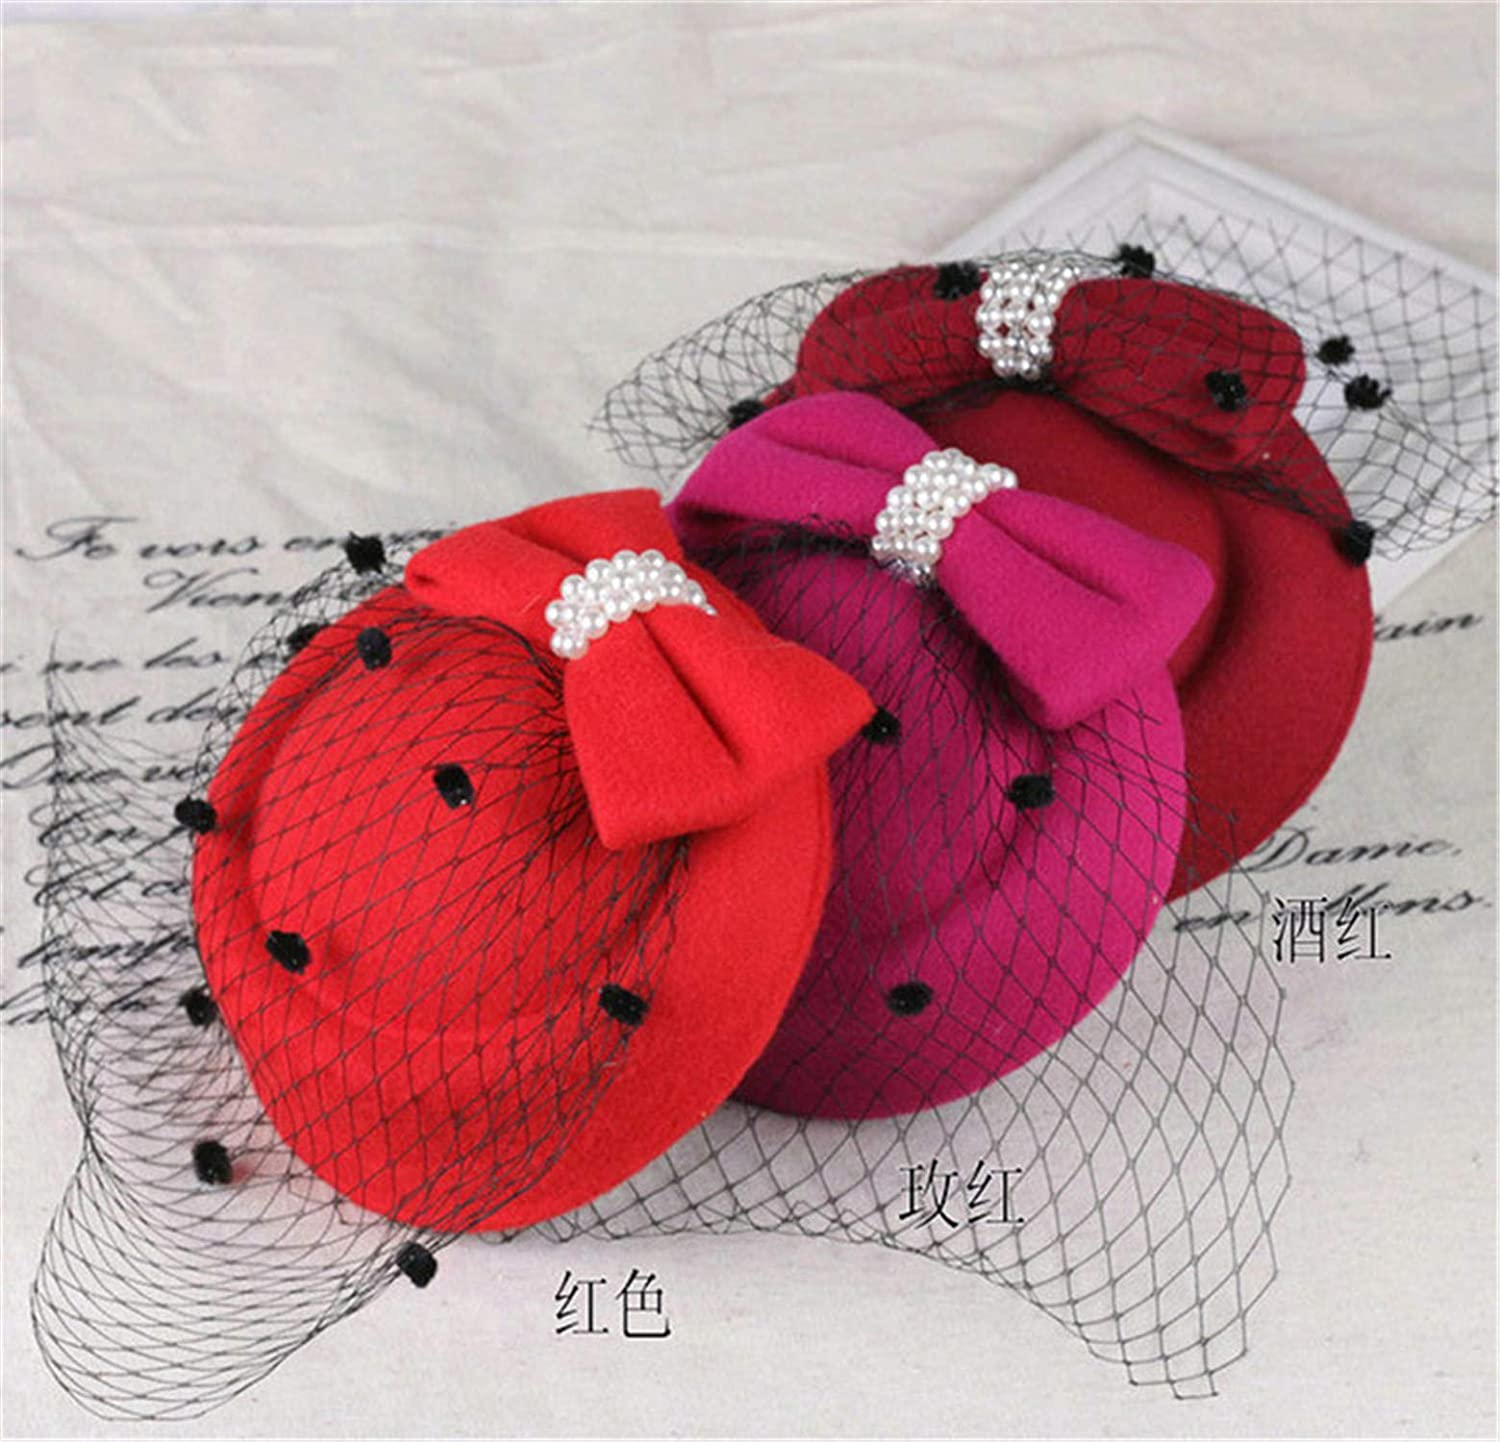 Sunonvi Wedding Hats Dress Fedoras Fascinator Hats for Women Winter Embroidered Veil Cotton Felt Pillbox Hats for Formal Cocktail Party